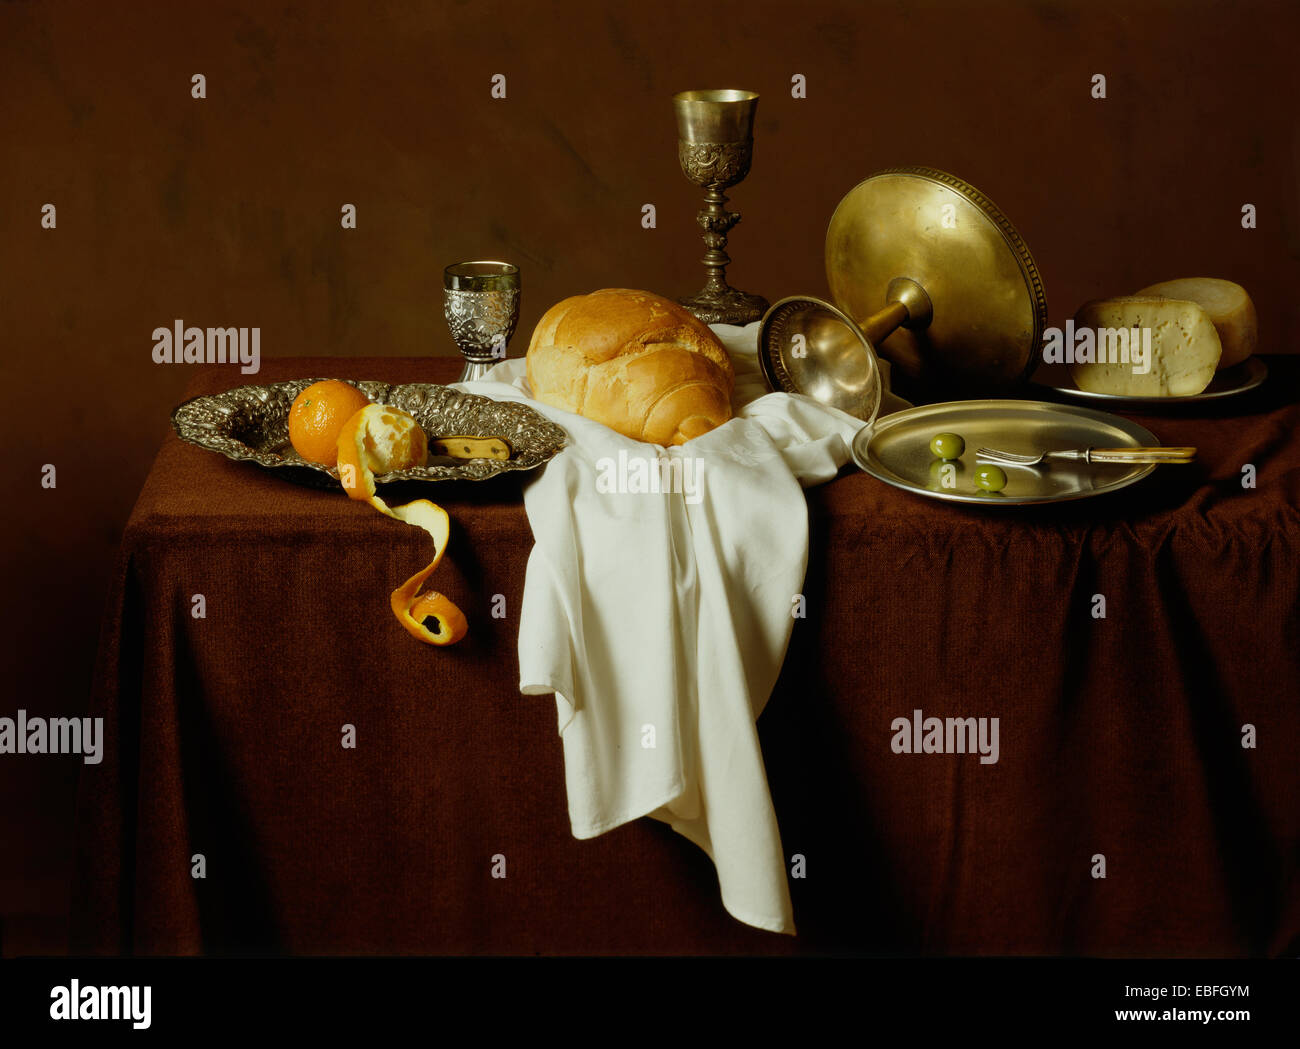 Still life, old style image of bread, cheese, olives, oranges on a brown table and brown background Stock Photo